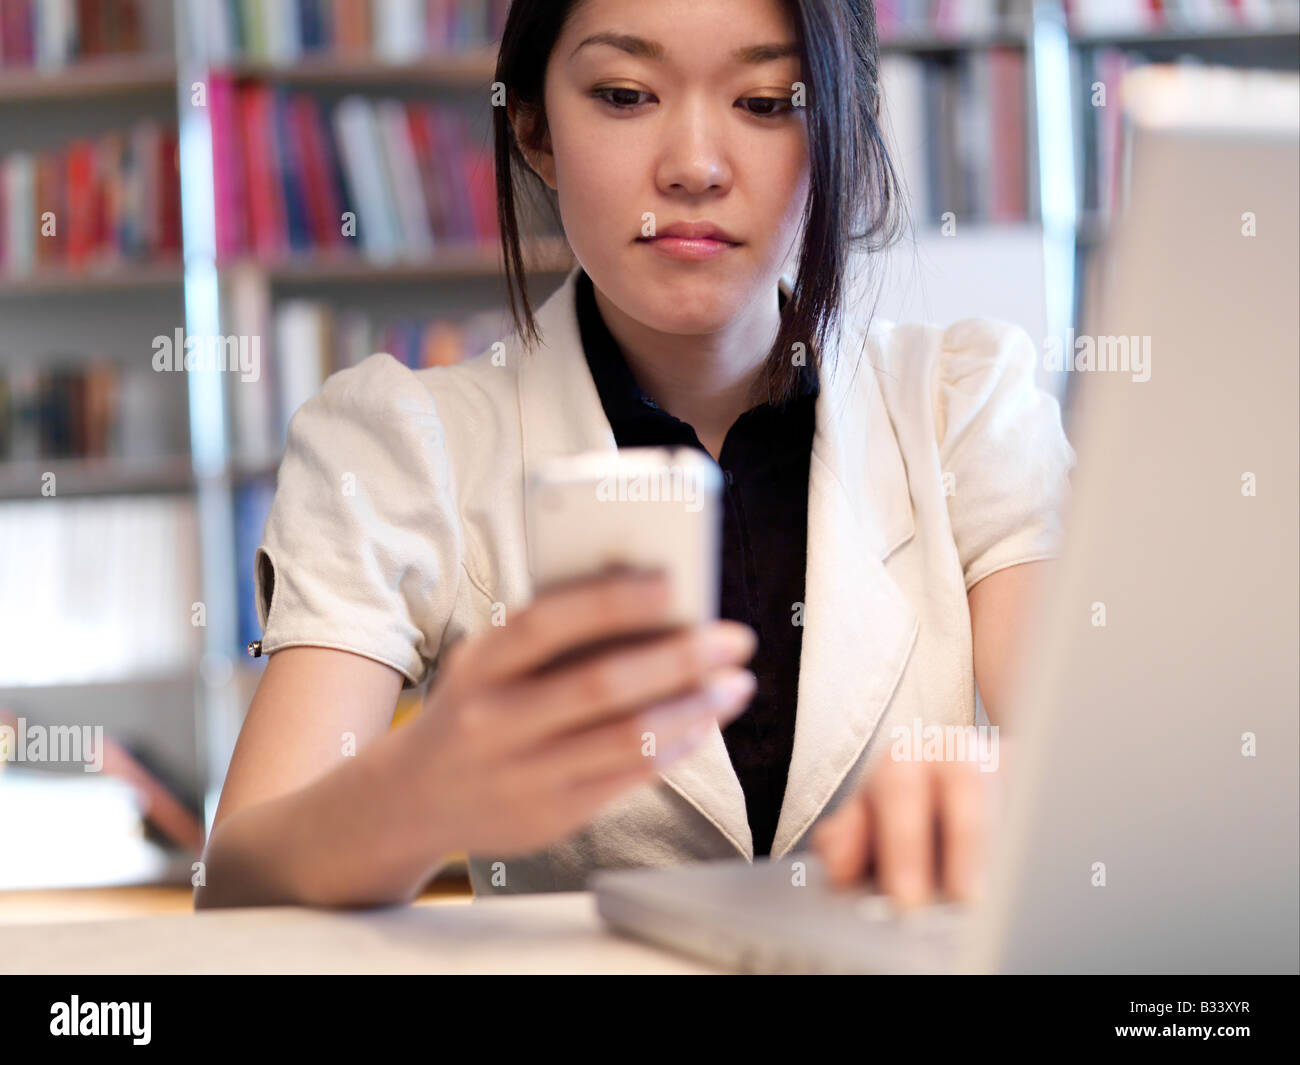 A young Asian sits at her desk working on her laptop. - Stock Image